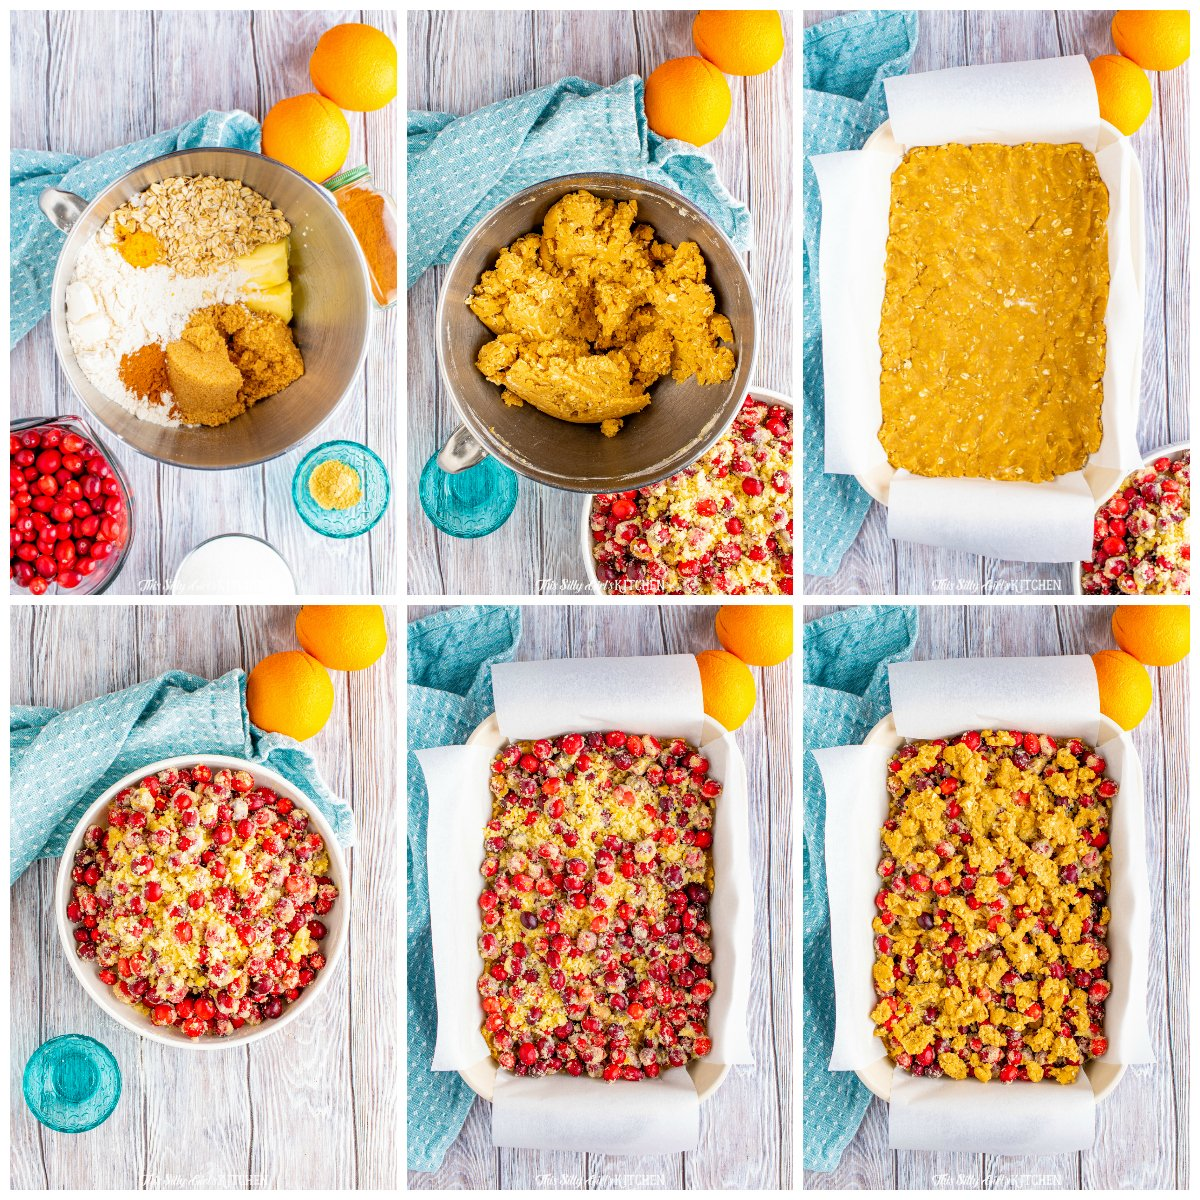 Step by step photos on how to make Cranberry Pie Bars